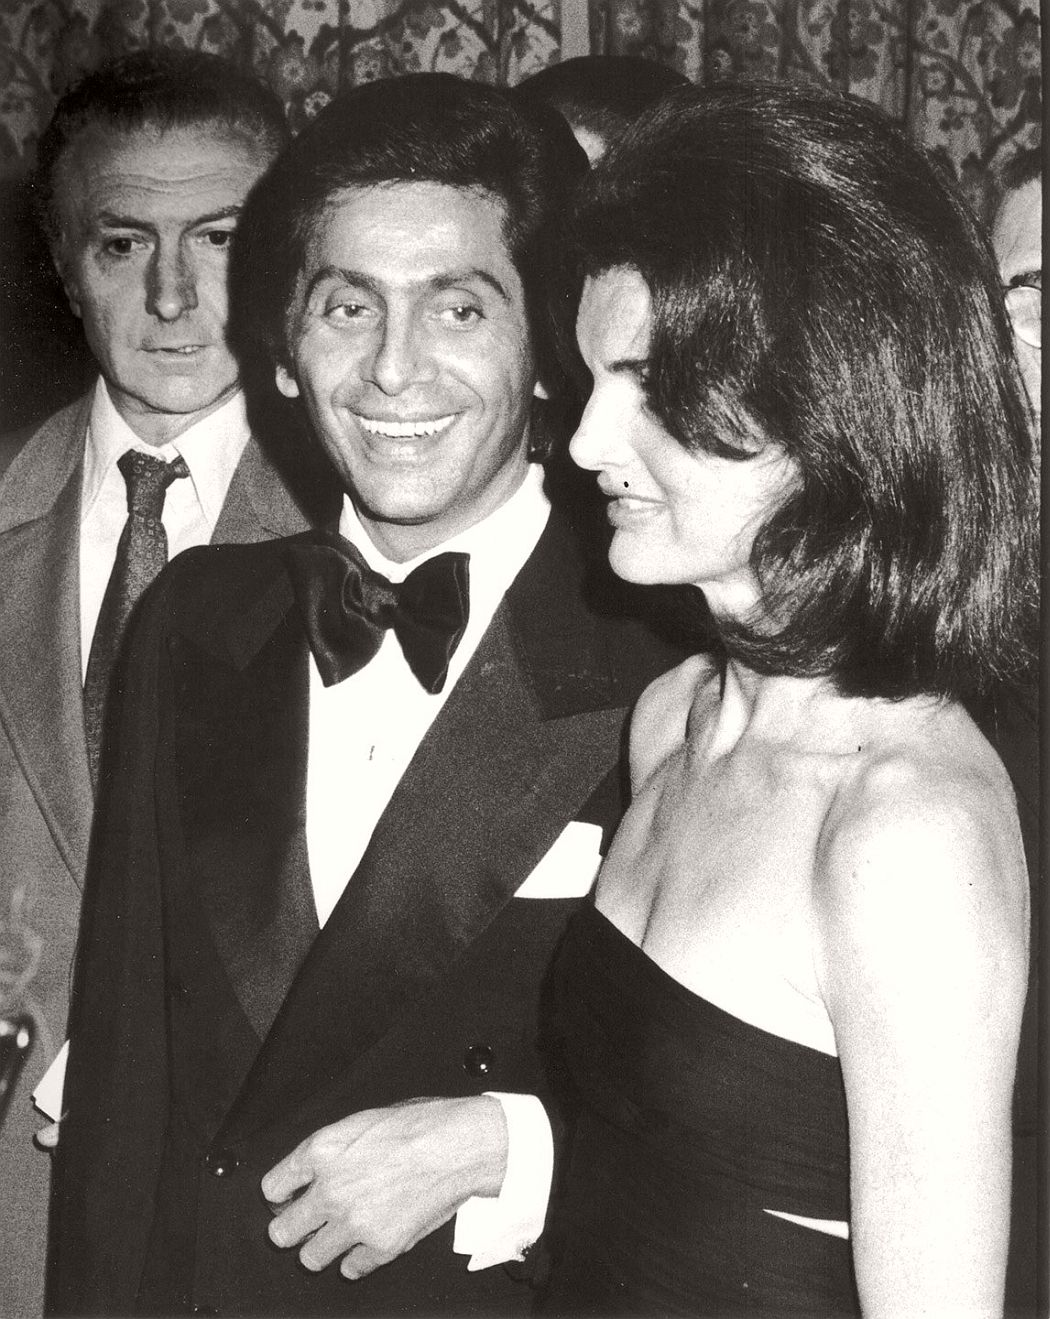 ronald-galella-biography-pioneer-paparazzo-10